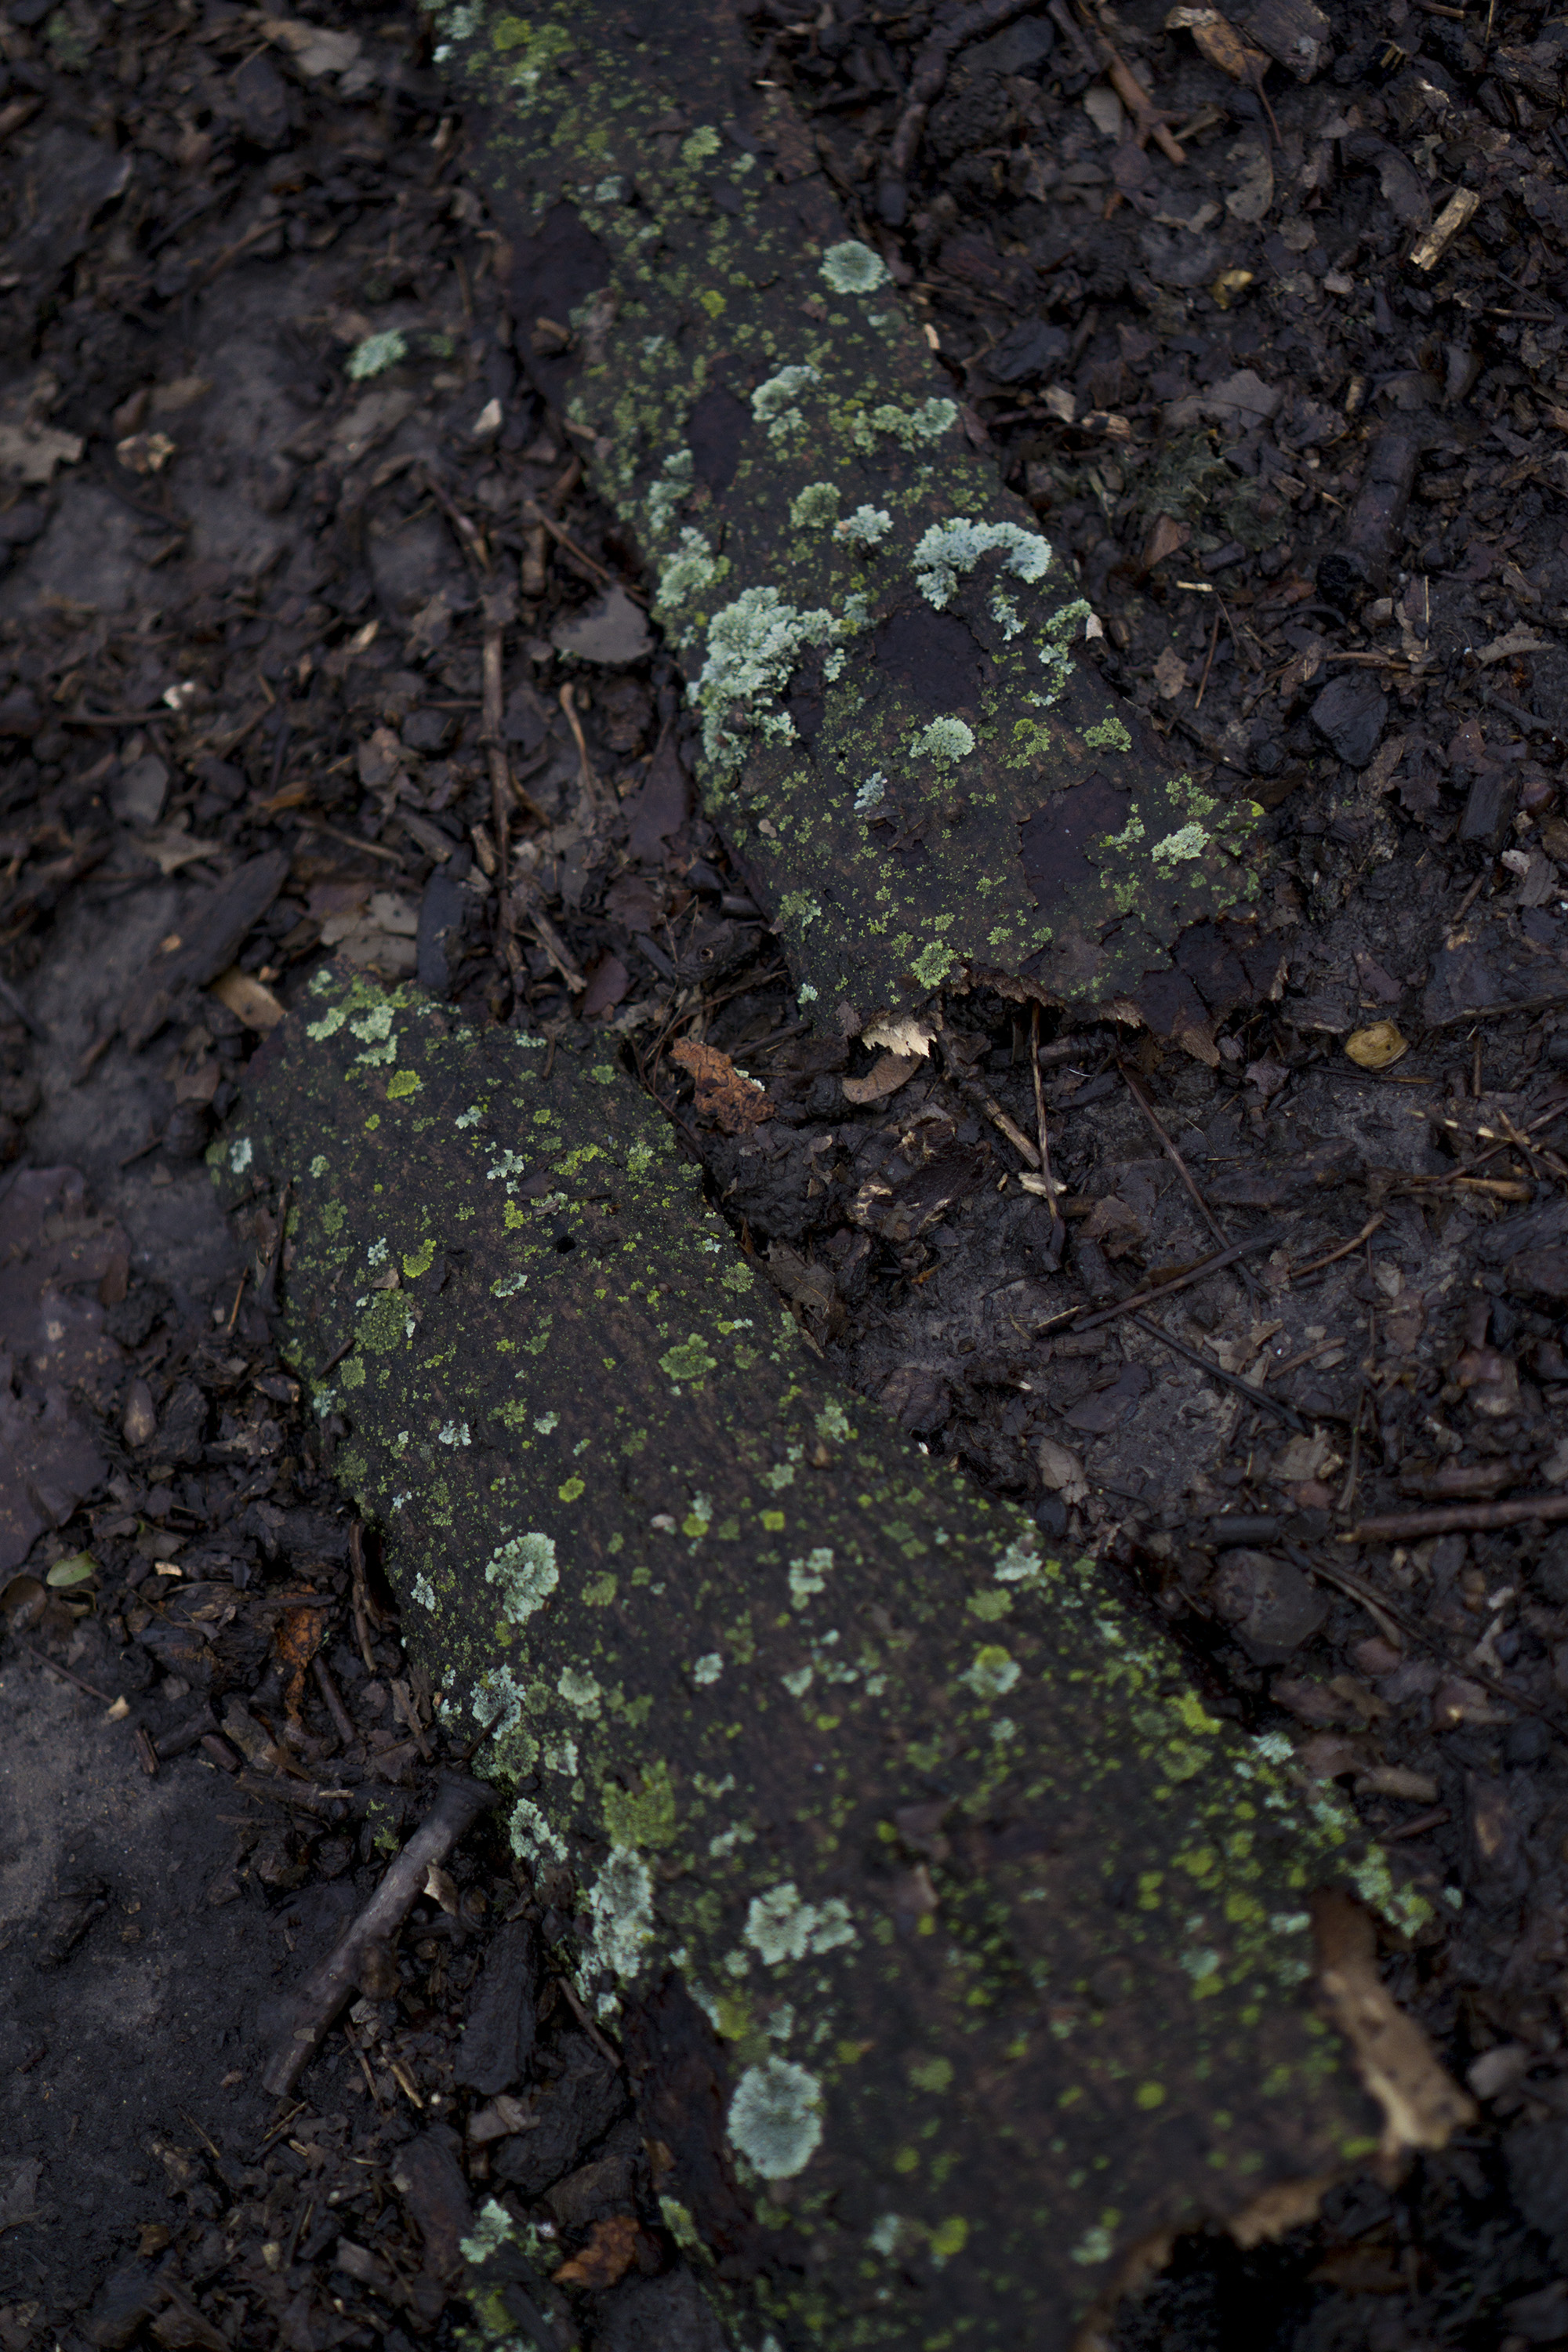 Moss growing on bark in Gompers Park, Chicago IL / Darker than Green